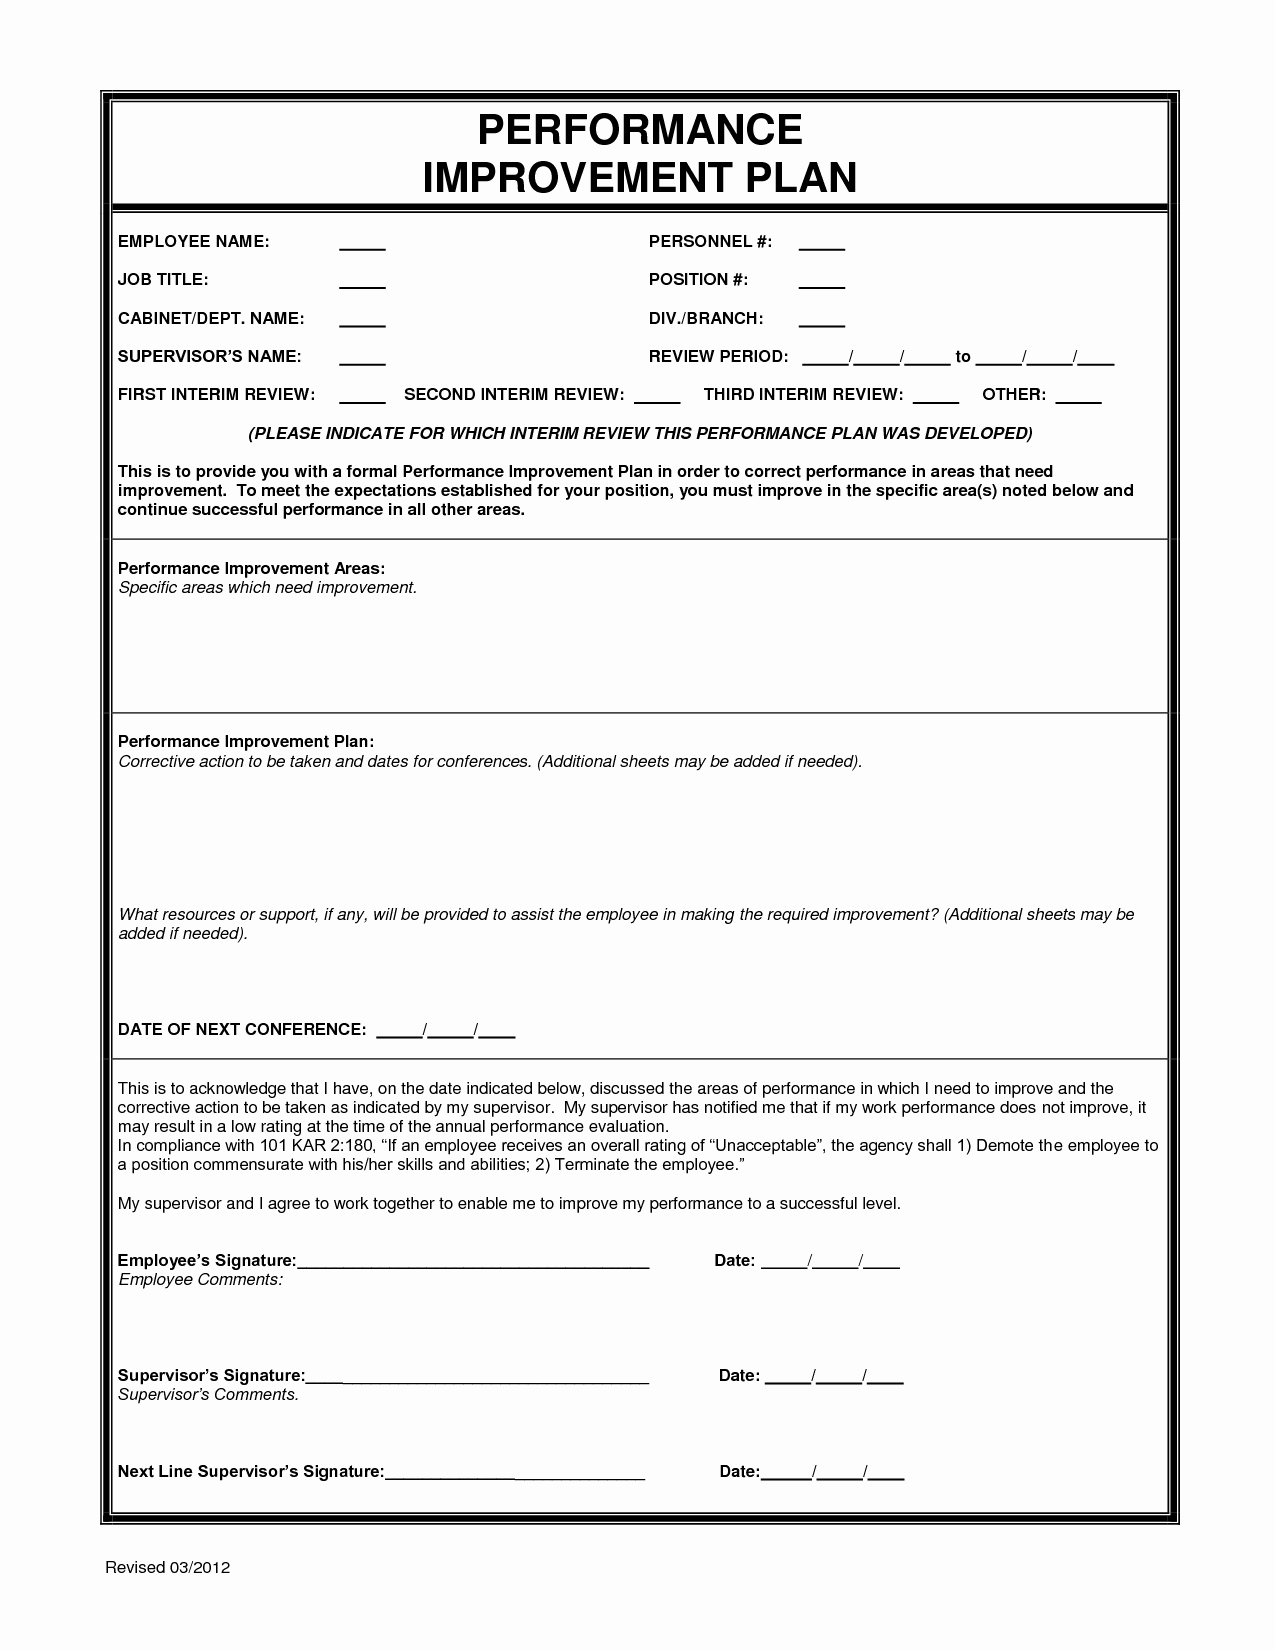 Performance Action Plan Template New Blank Employee Performance Action Plan form and Template